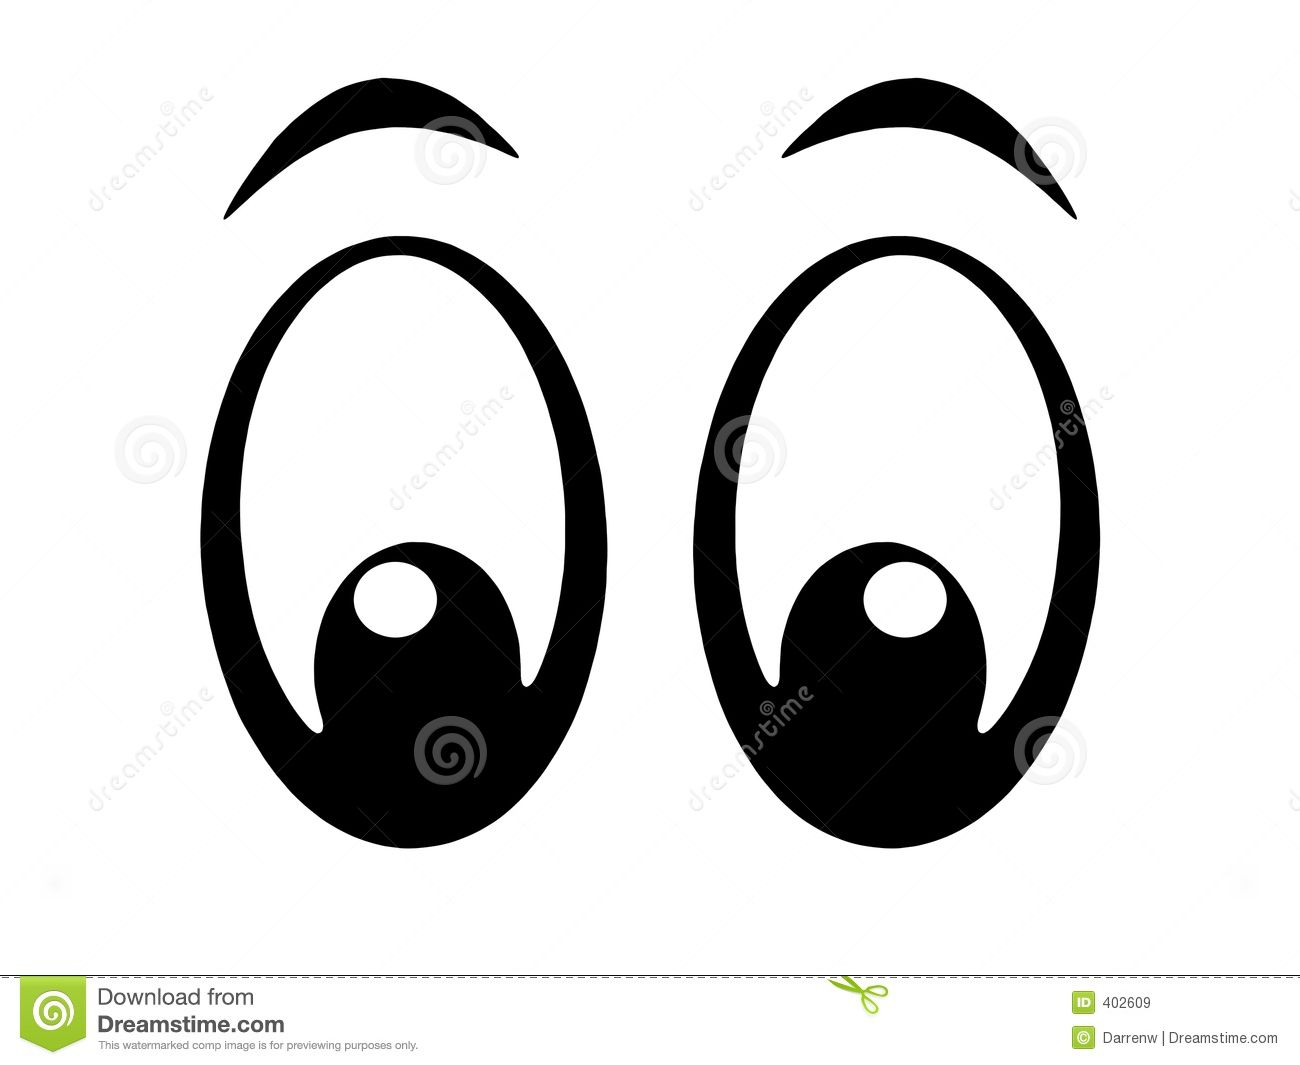 Free clipart images eyes vector free library Eyes Bw Royalty Free Stock Images - Image: 402609 | Nursing ... vector free library